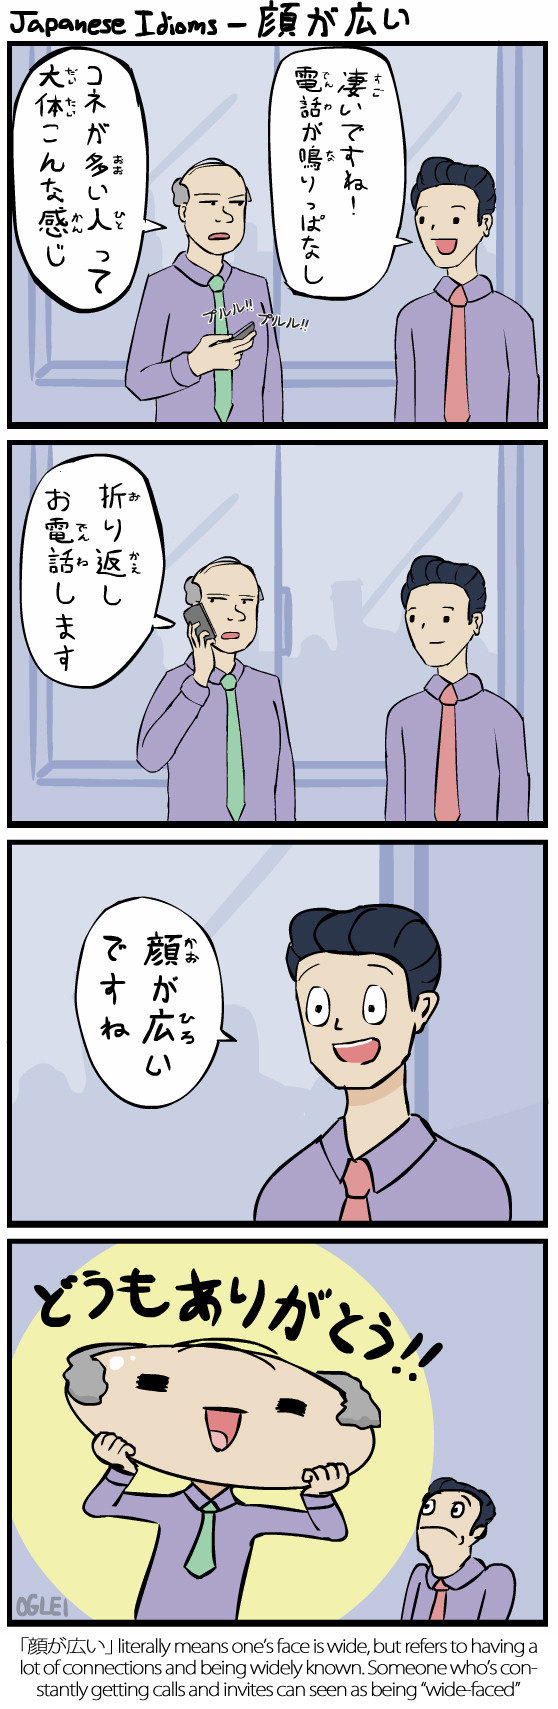 Japanese Idioms 1 - Wide Face - Japanese